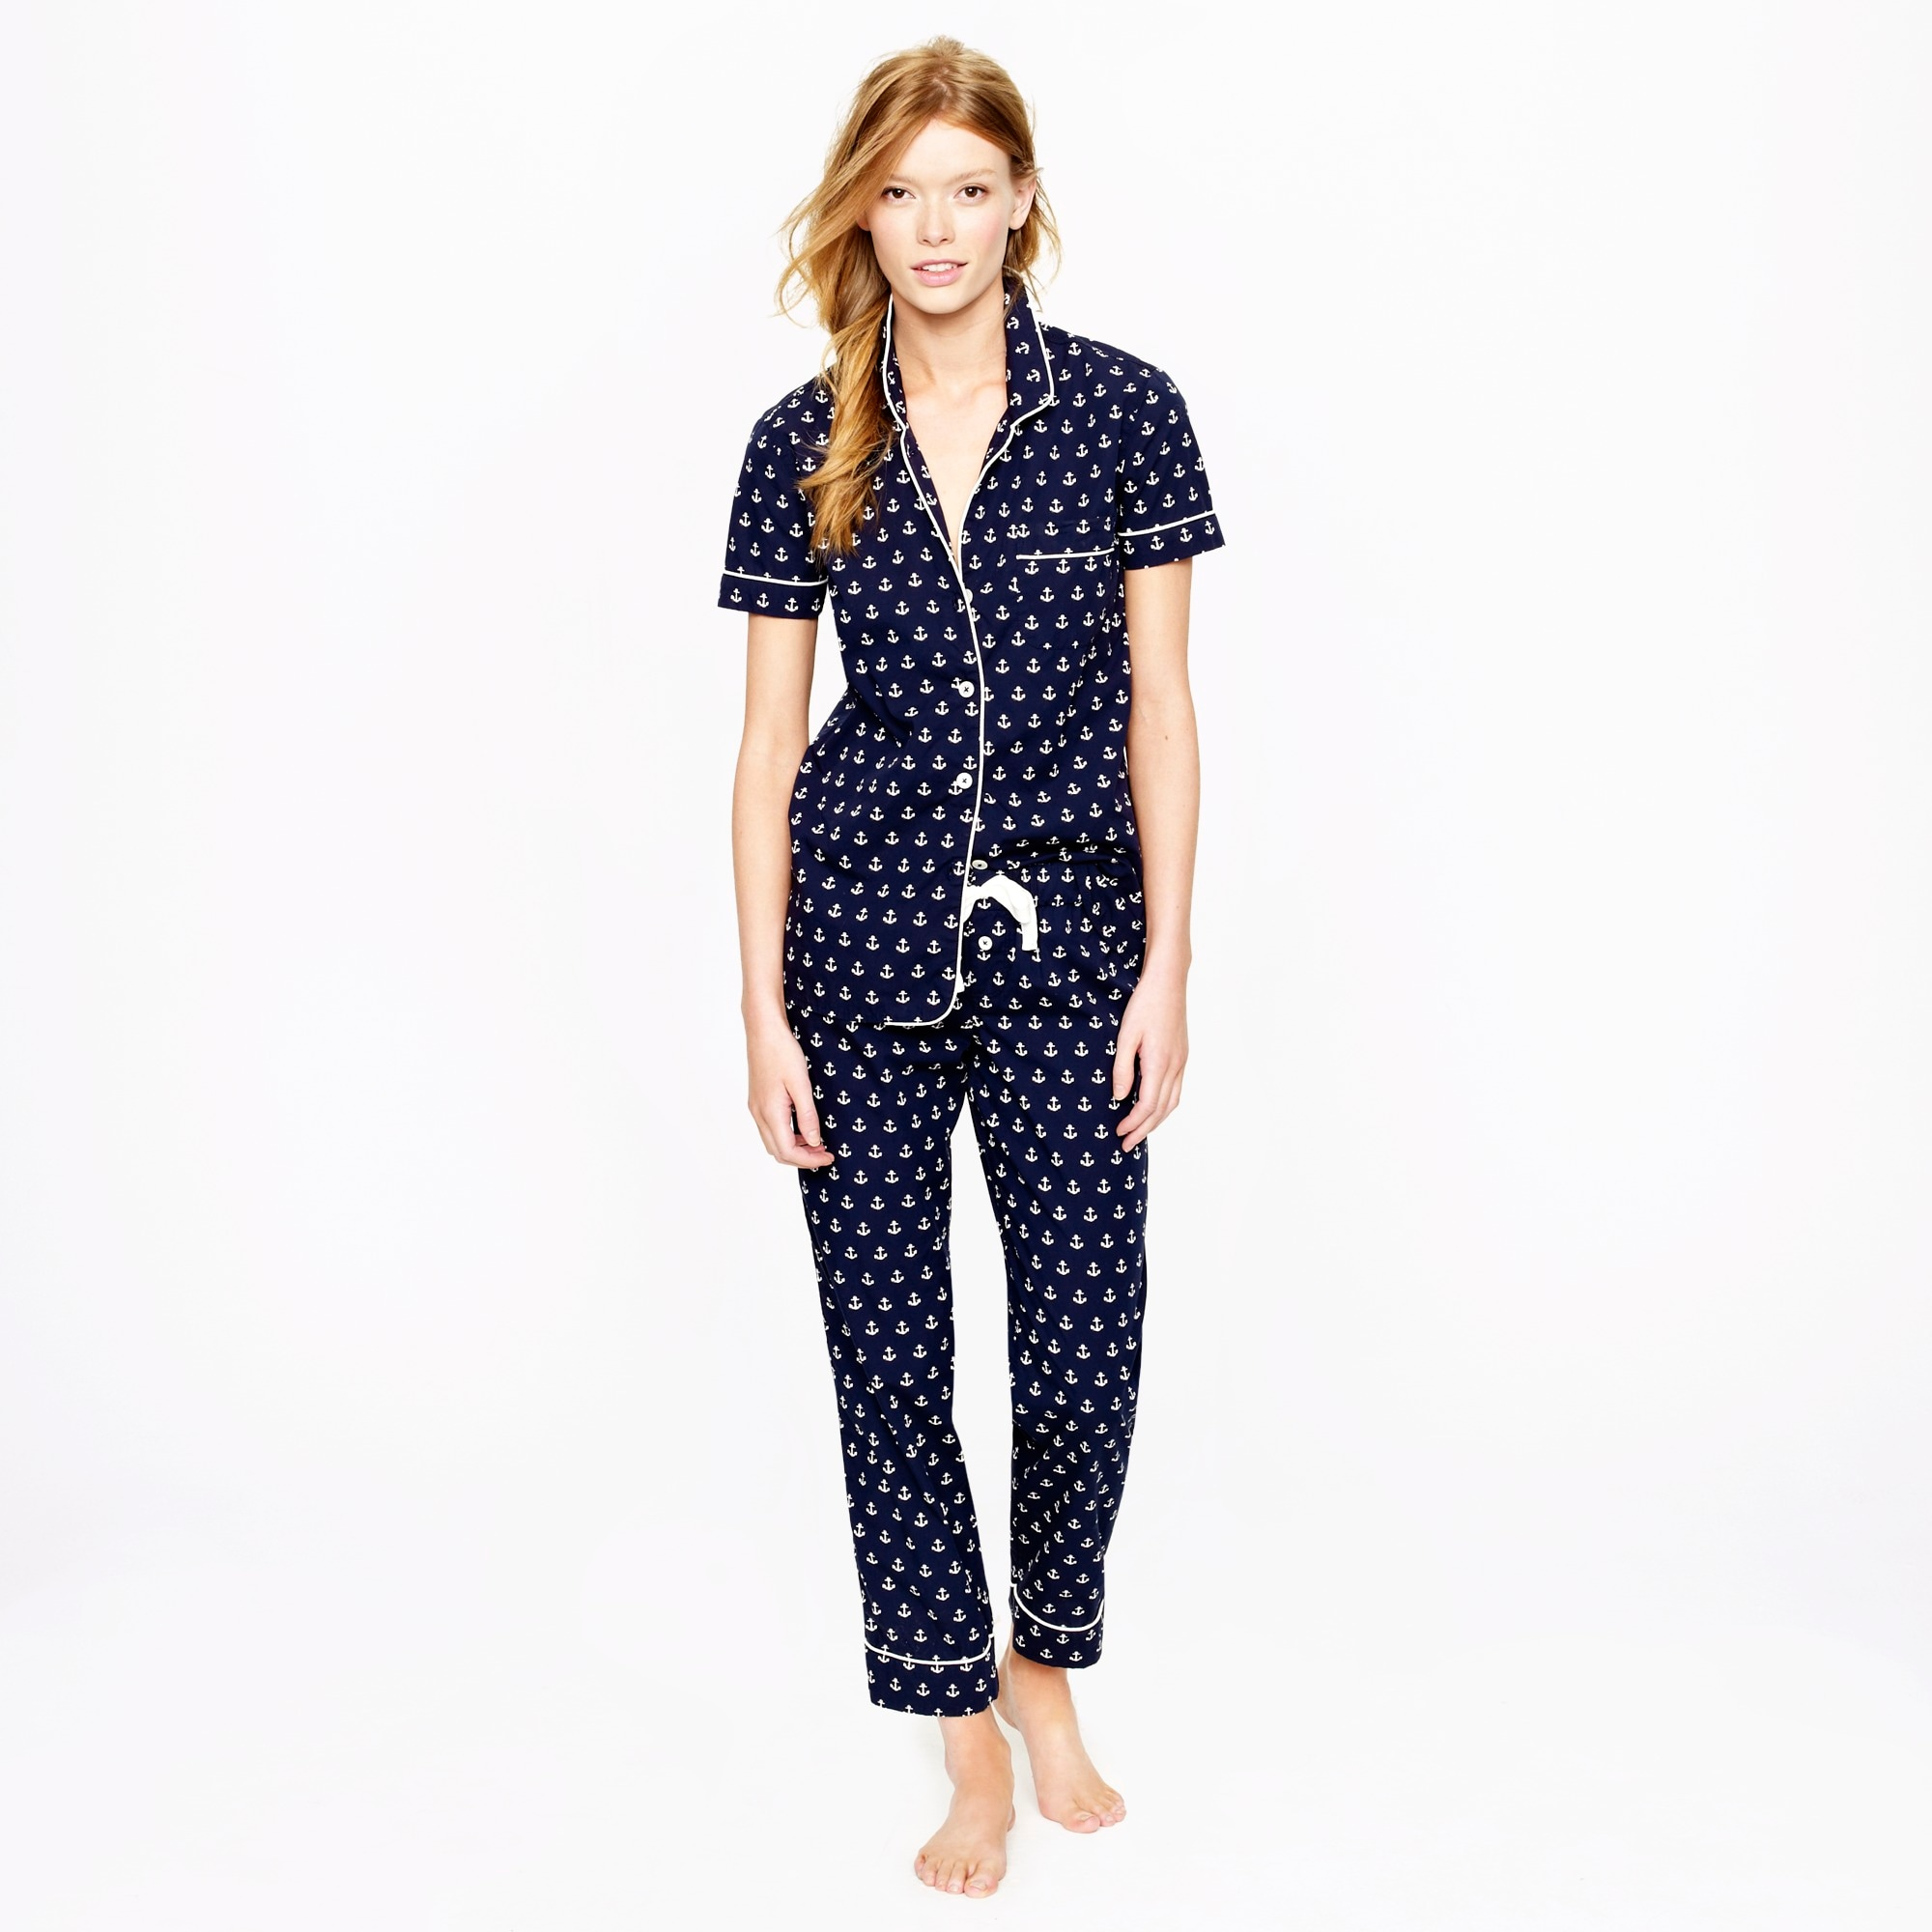 Vintage short-sleeve pajama set in anchor print